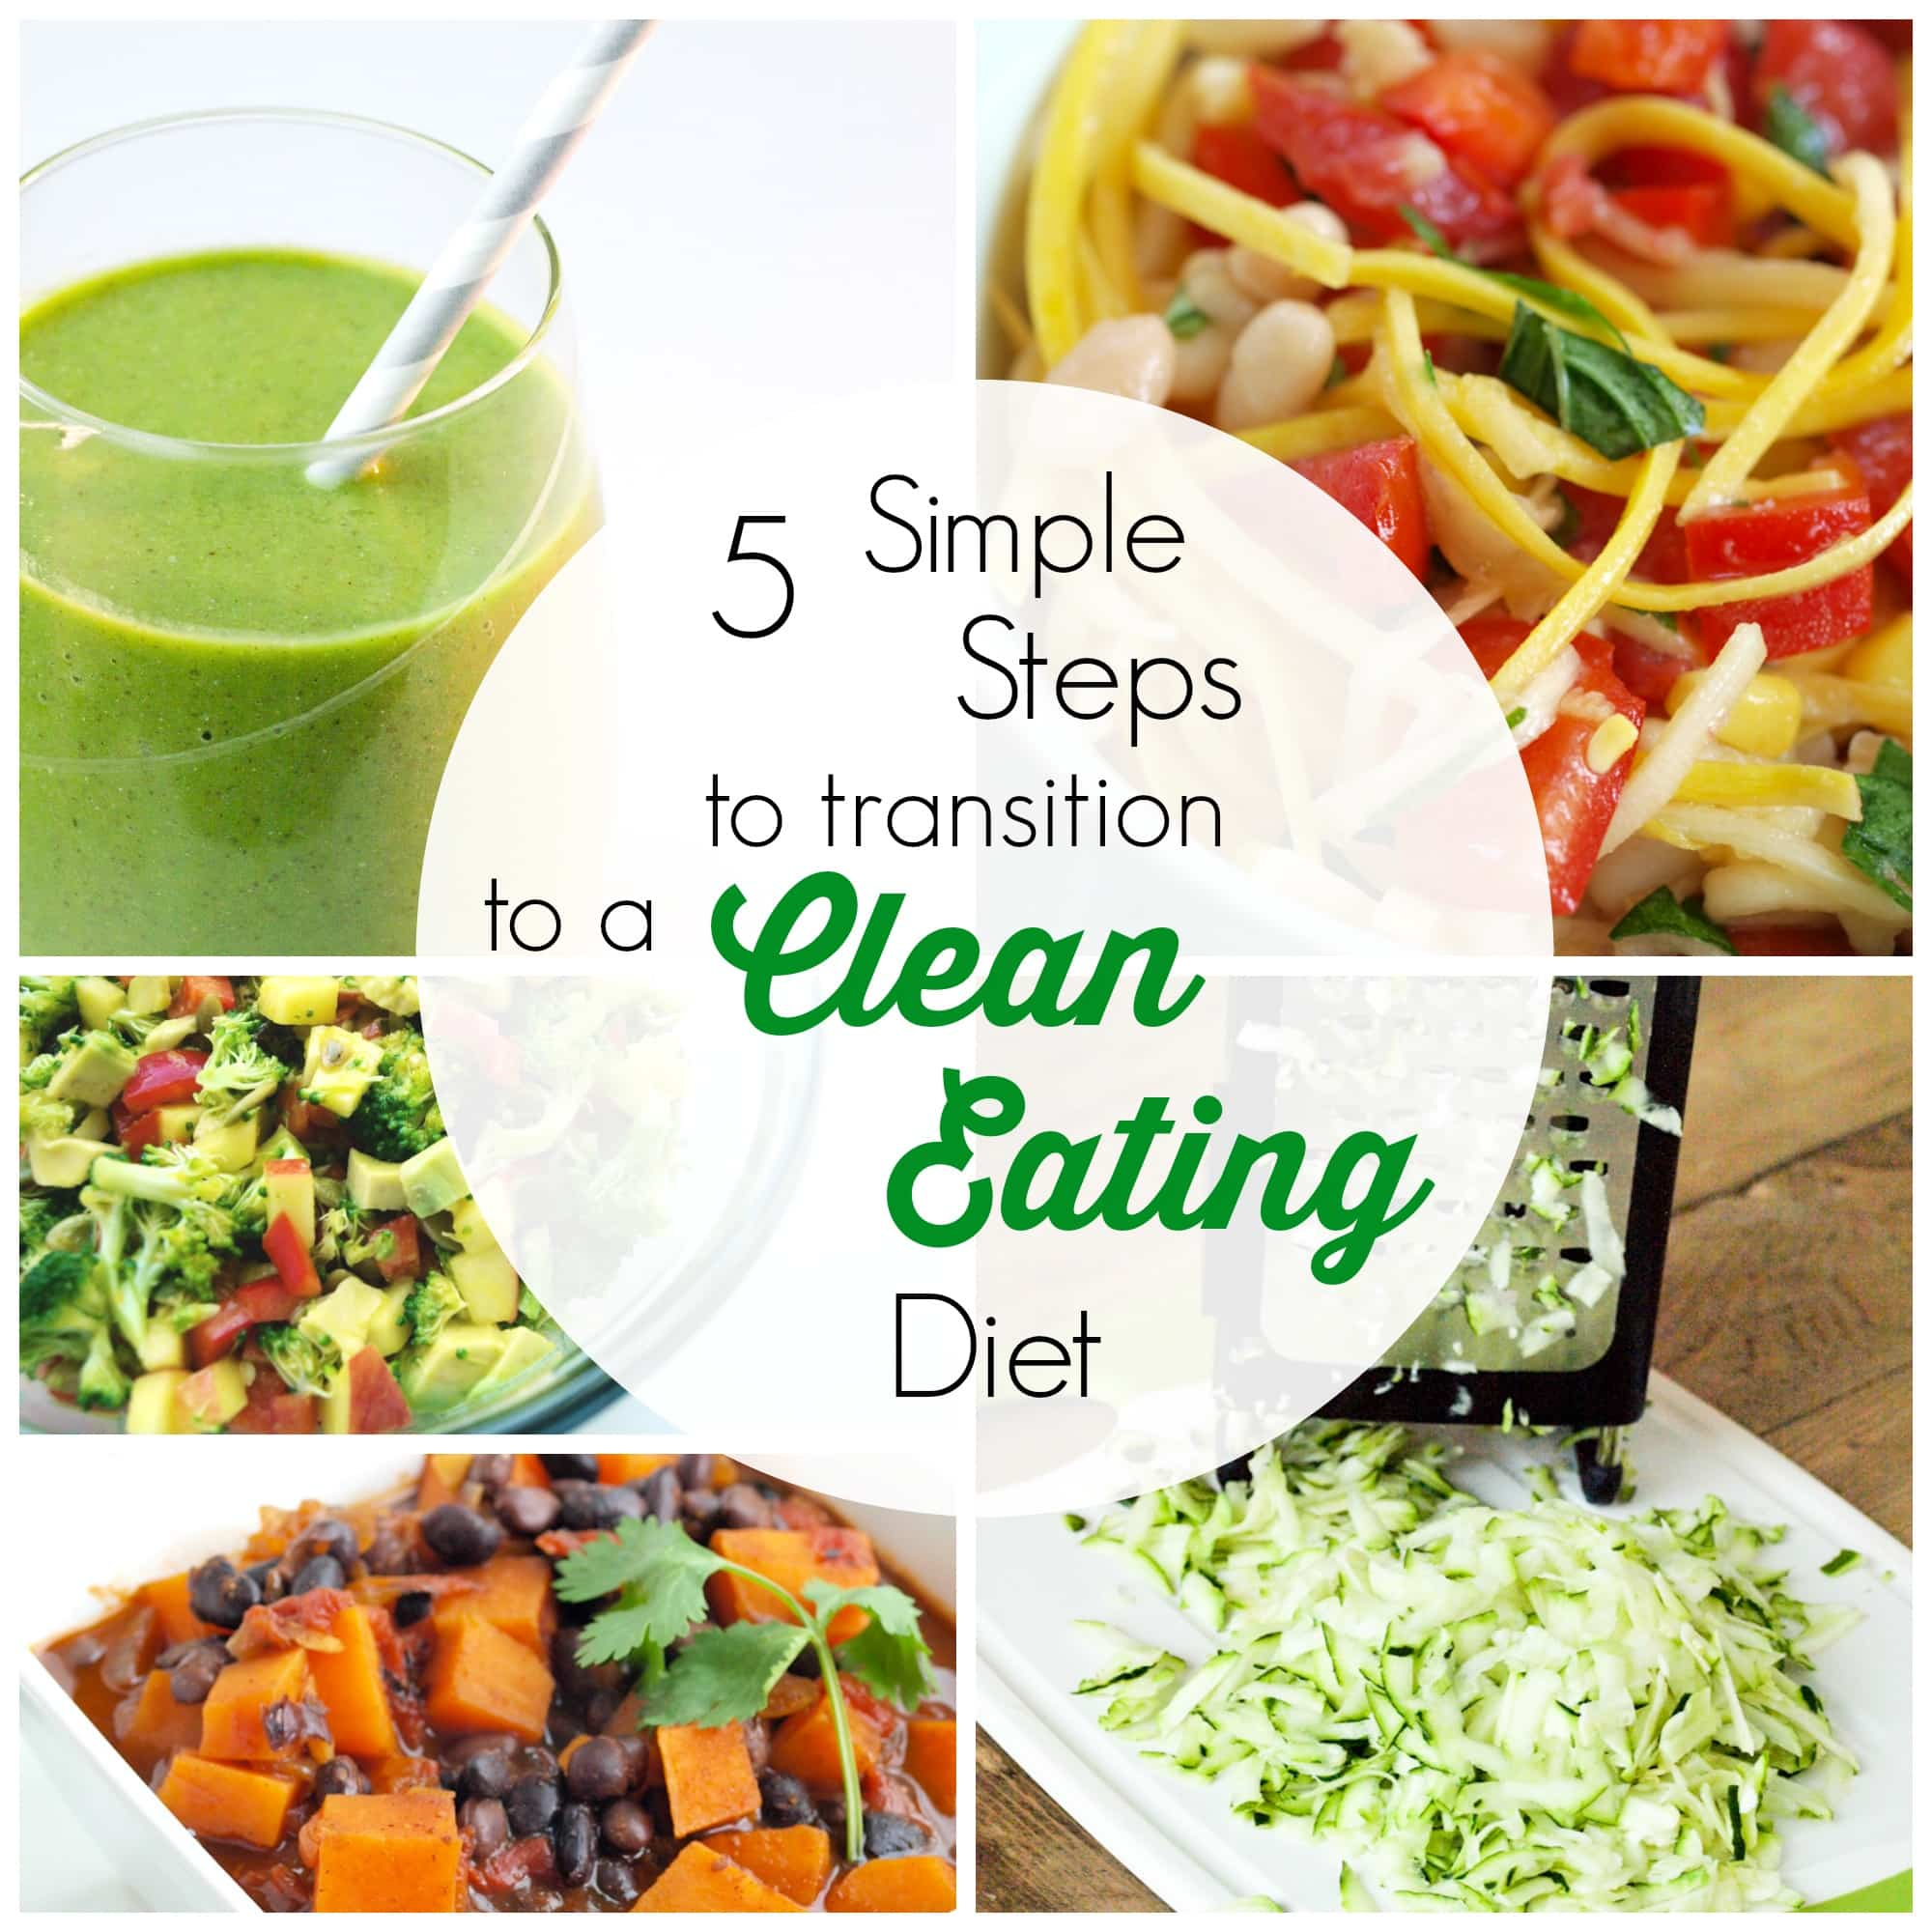 5 Simple Steps To Transition To A Clean Eatingt